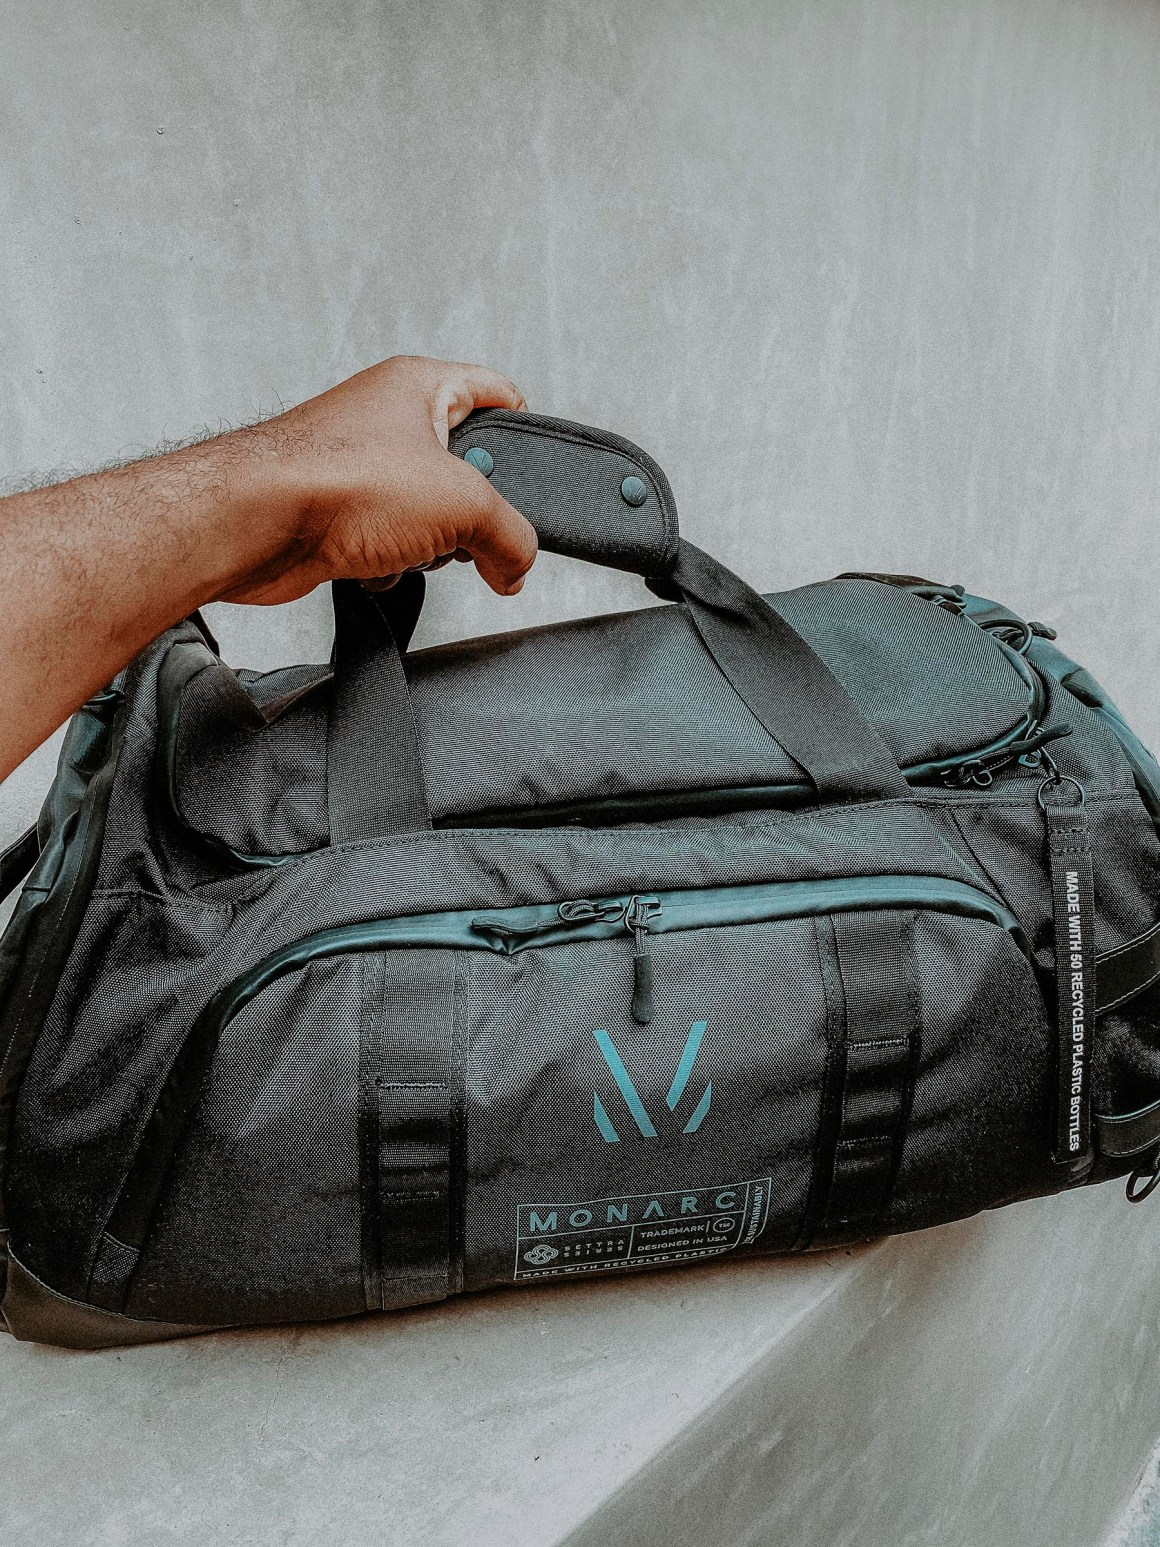 OMG! We Finally Found The #1 Best Travel Backpack - Monarc- The Settra Series - Duffel Bag